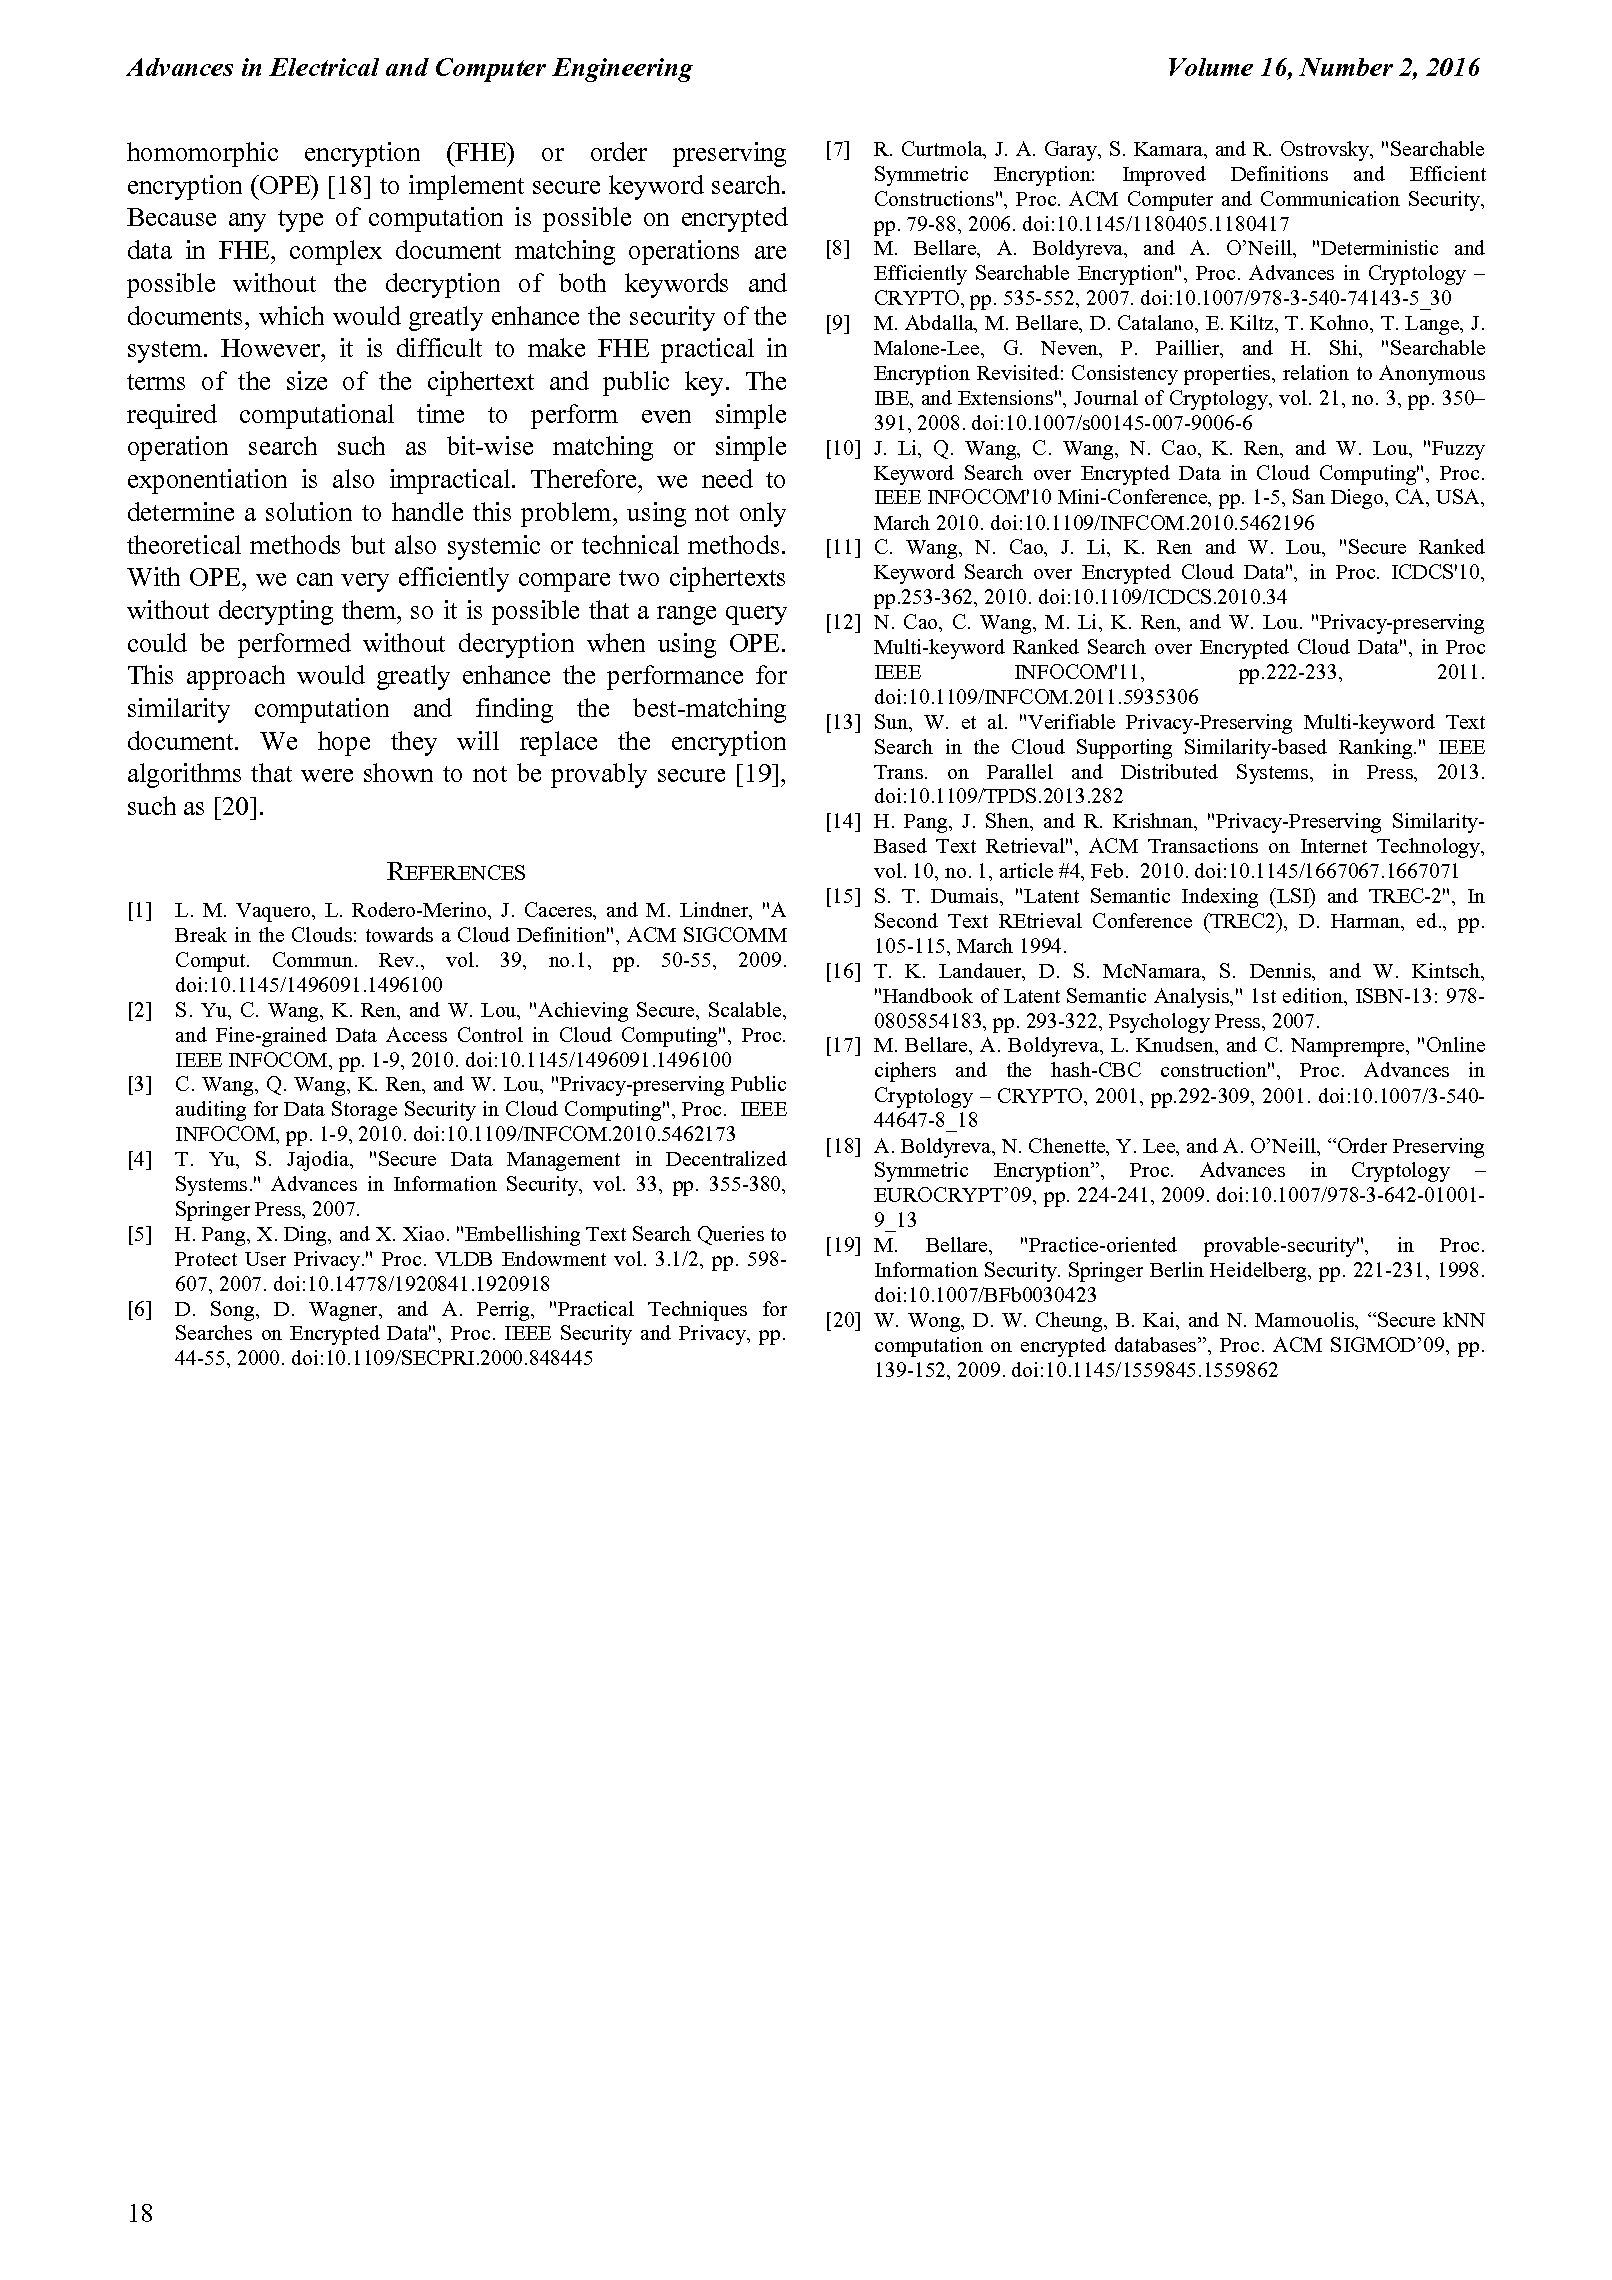 PDF Quickview for paper with DOI:10.4316/AECE.2016.02002